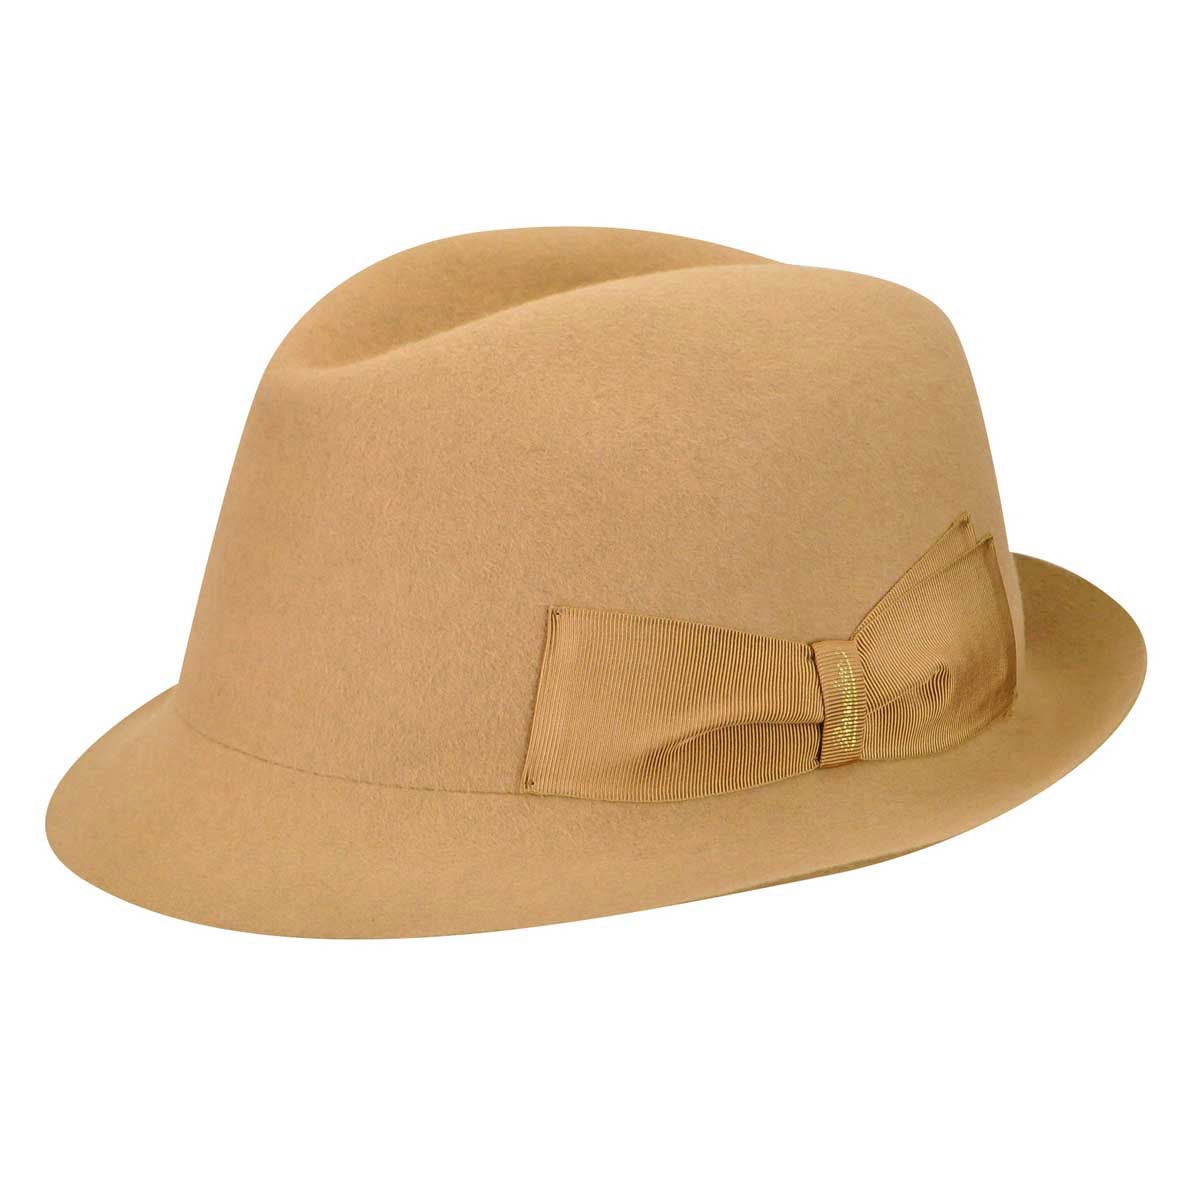 1940s Hats History 160158 Marengo Fur Felt Fedora $250.00 AT vintagedancer.com